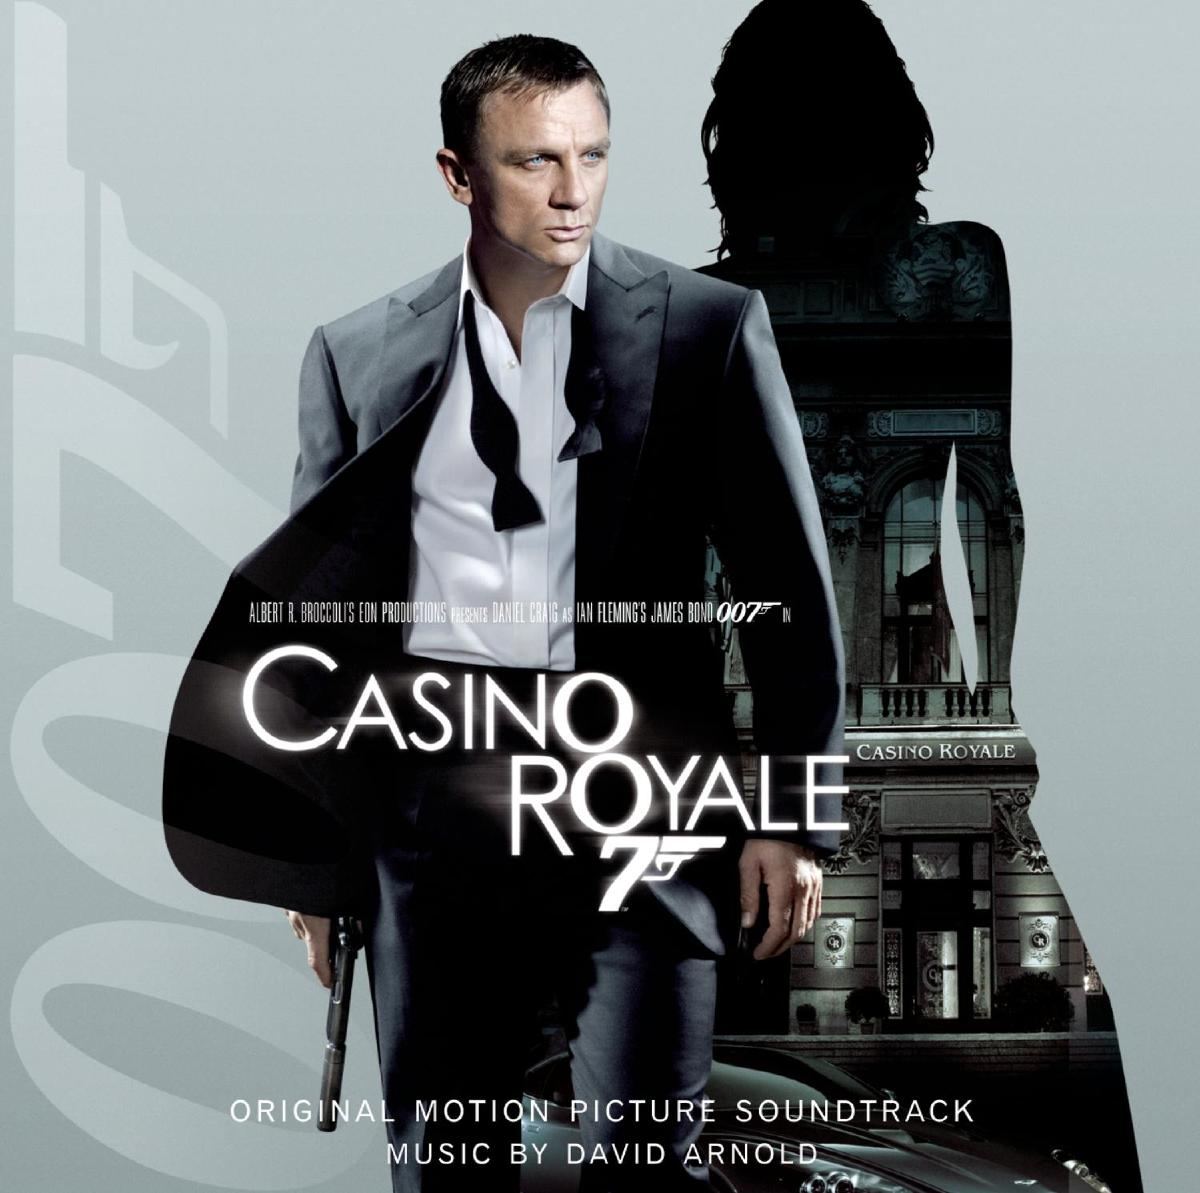 How does vesper die in the movie casino royale advantages of online casinos